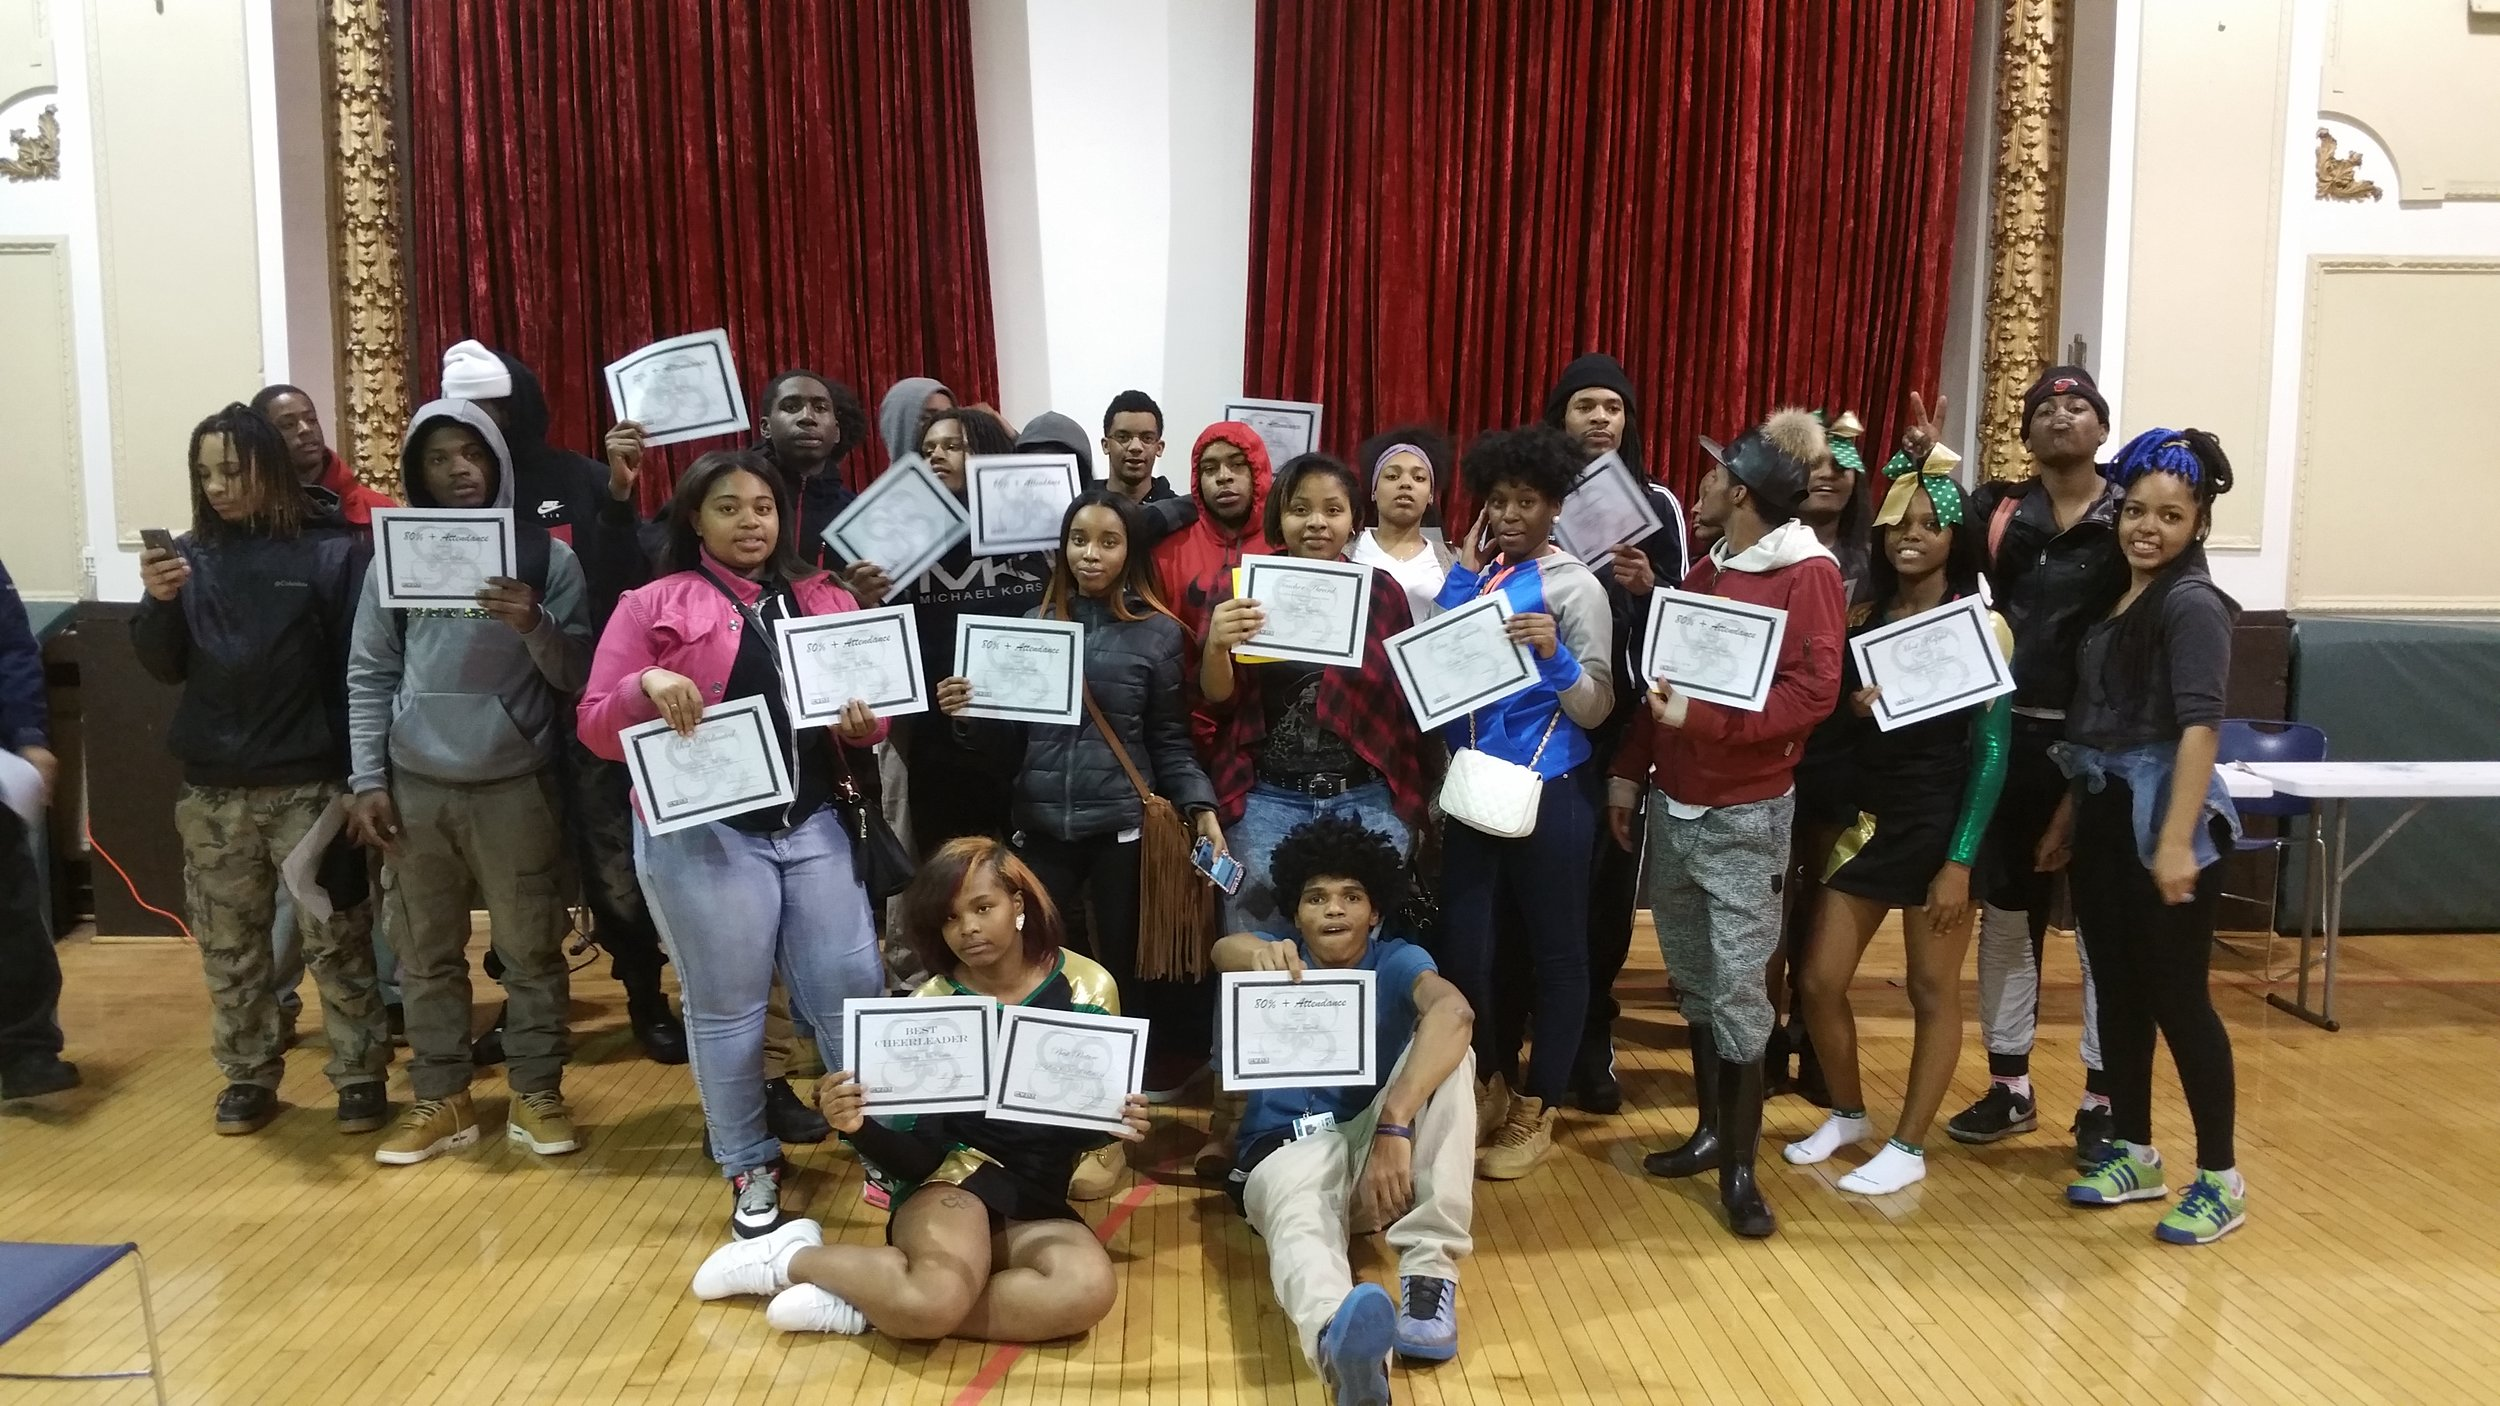 Community Youth Development Institute Students With Certificates